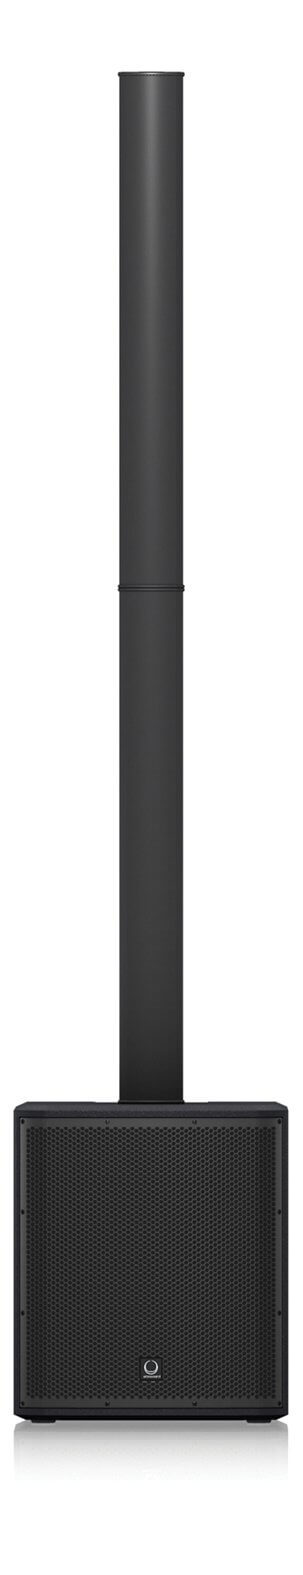 Turbosound iNSPIRE iP2000 1,000 Watt Powered Column Loudspeaker